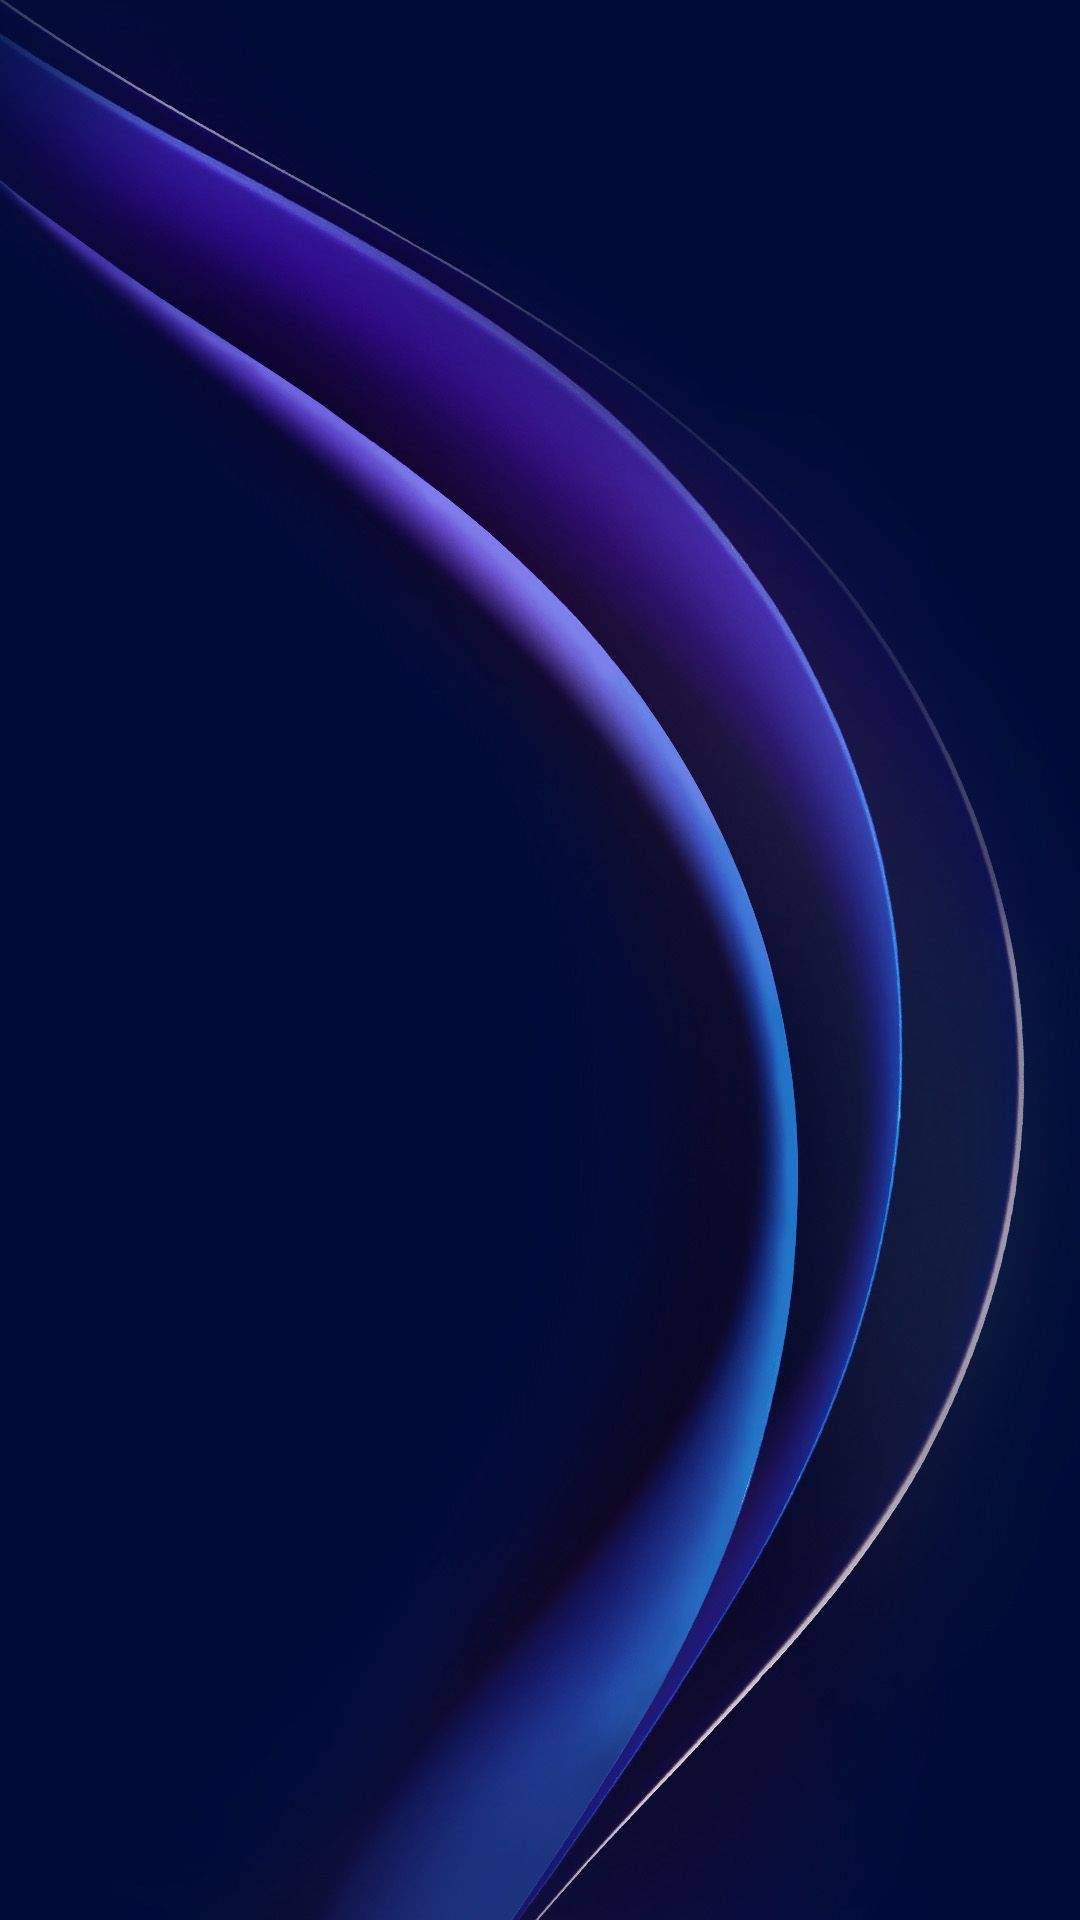 Huawei Honor 8 Hd Android Wallpaper Blue Huawei Wallpapers Android Wallpaper